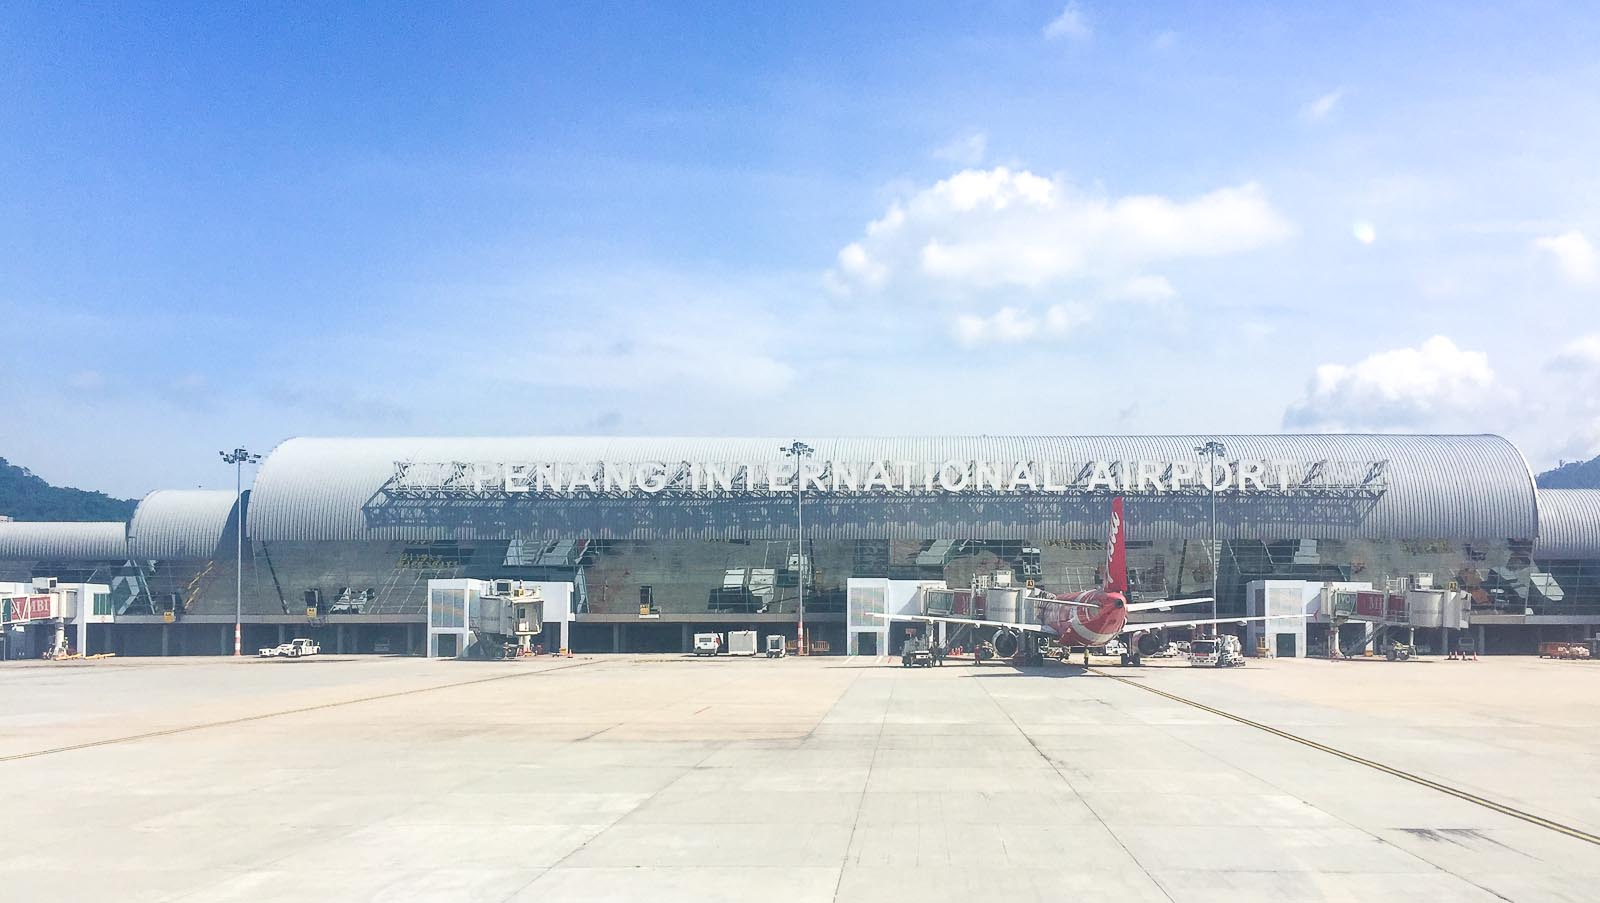 Penang International Airport: 22 Things You Should Know